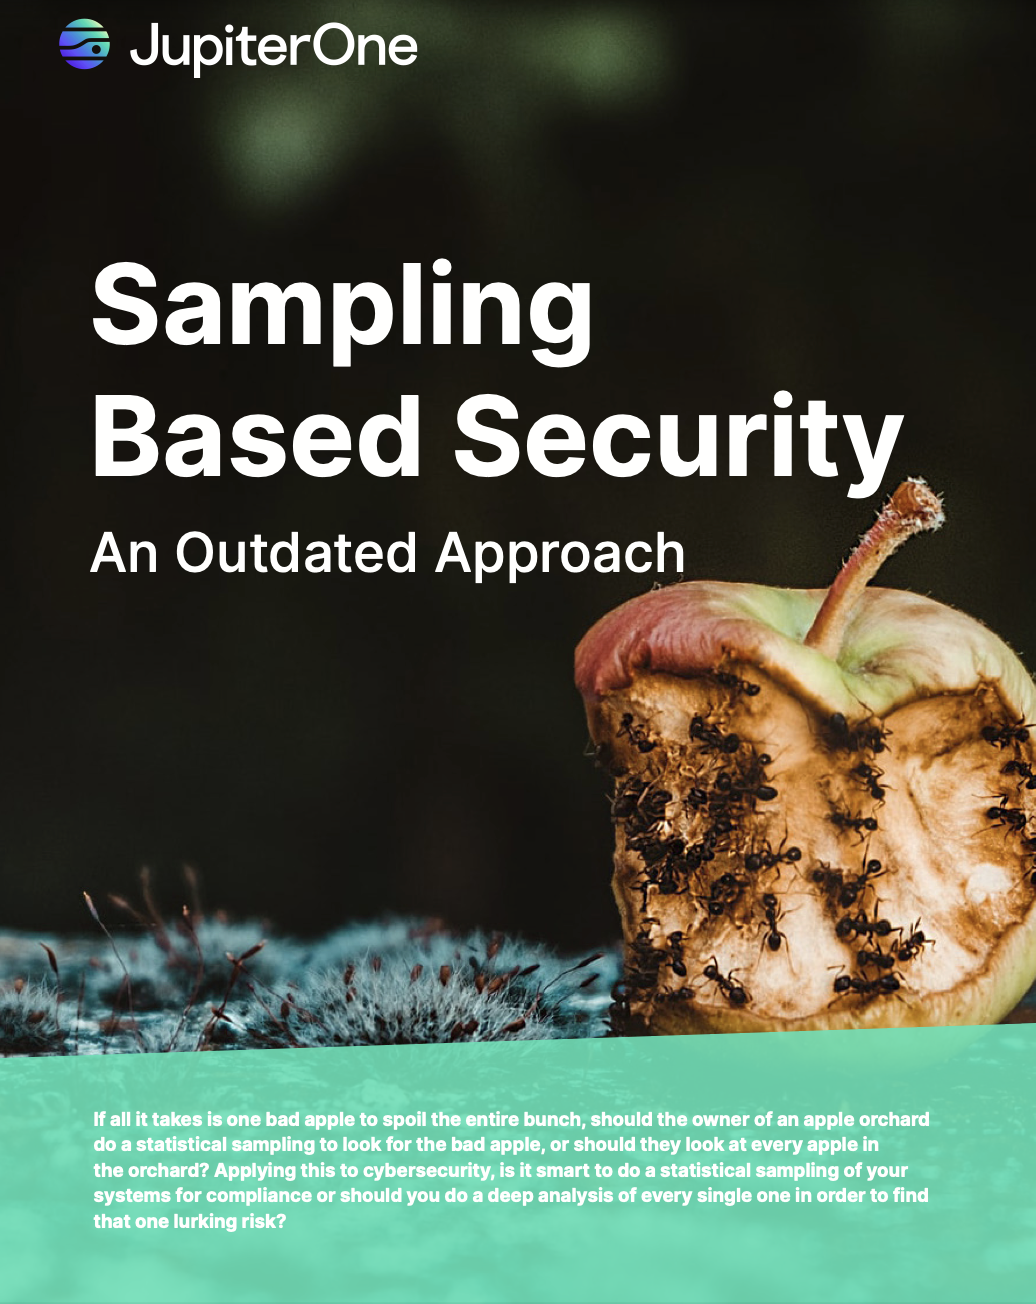 Sampling Based Security An Outdated Approach - JupiterOne E-Book